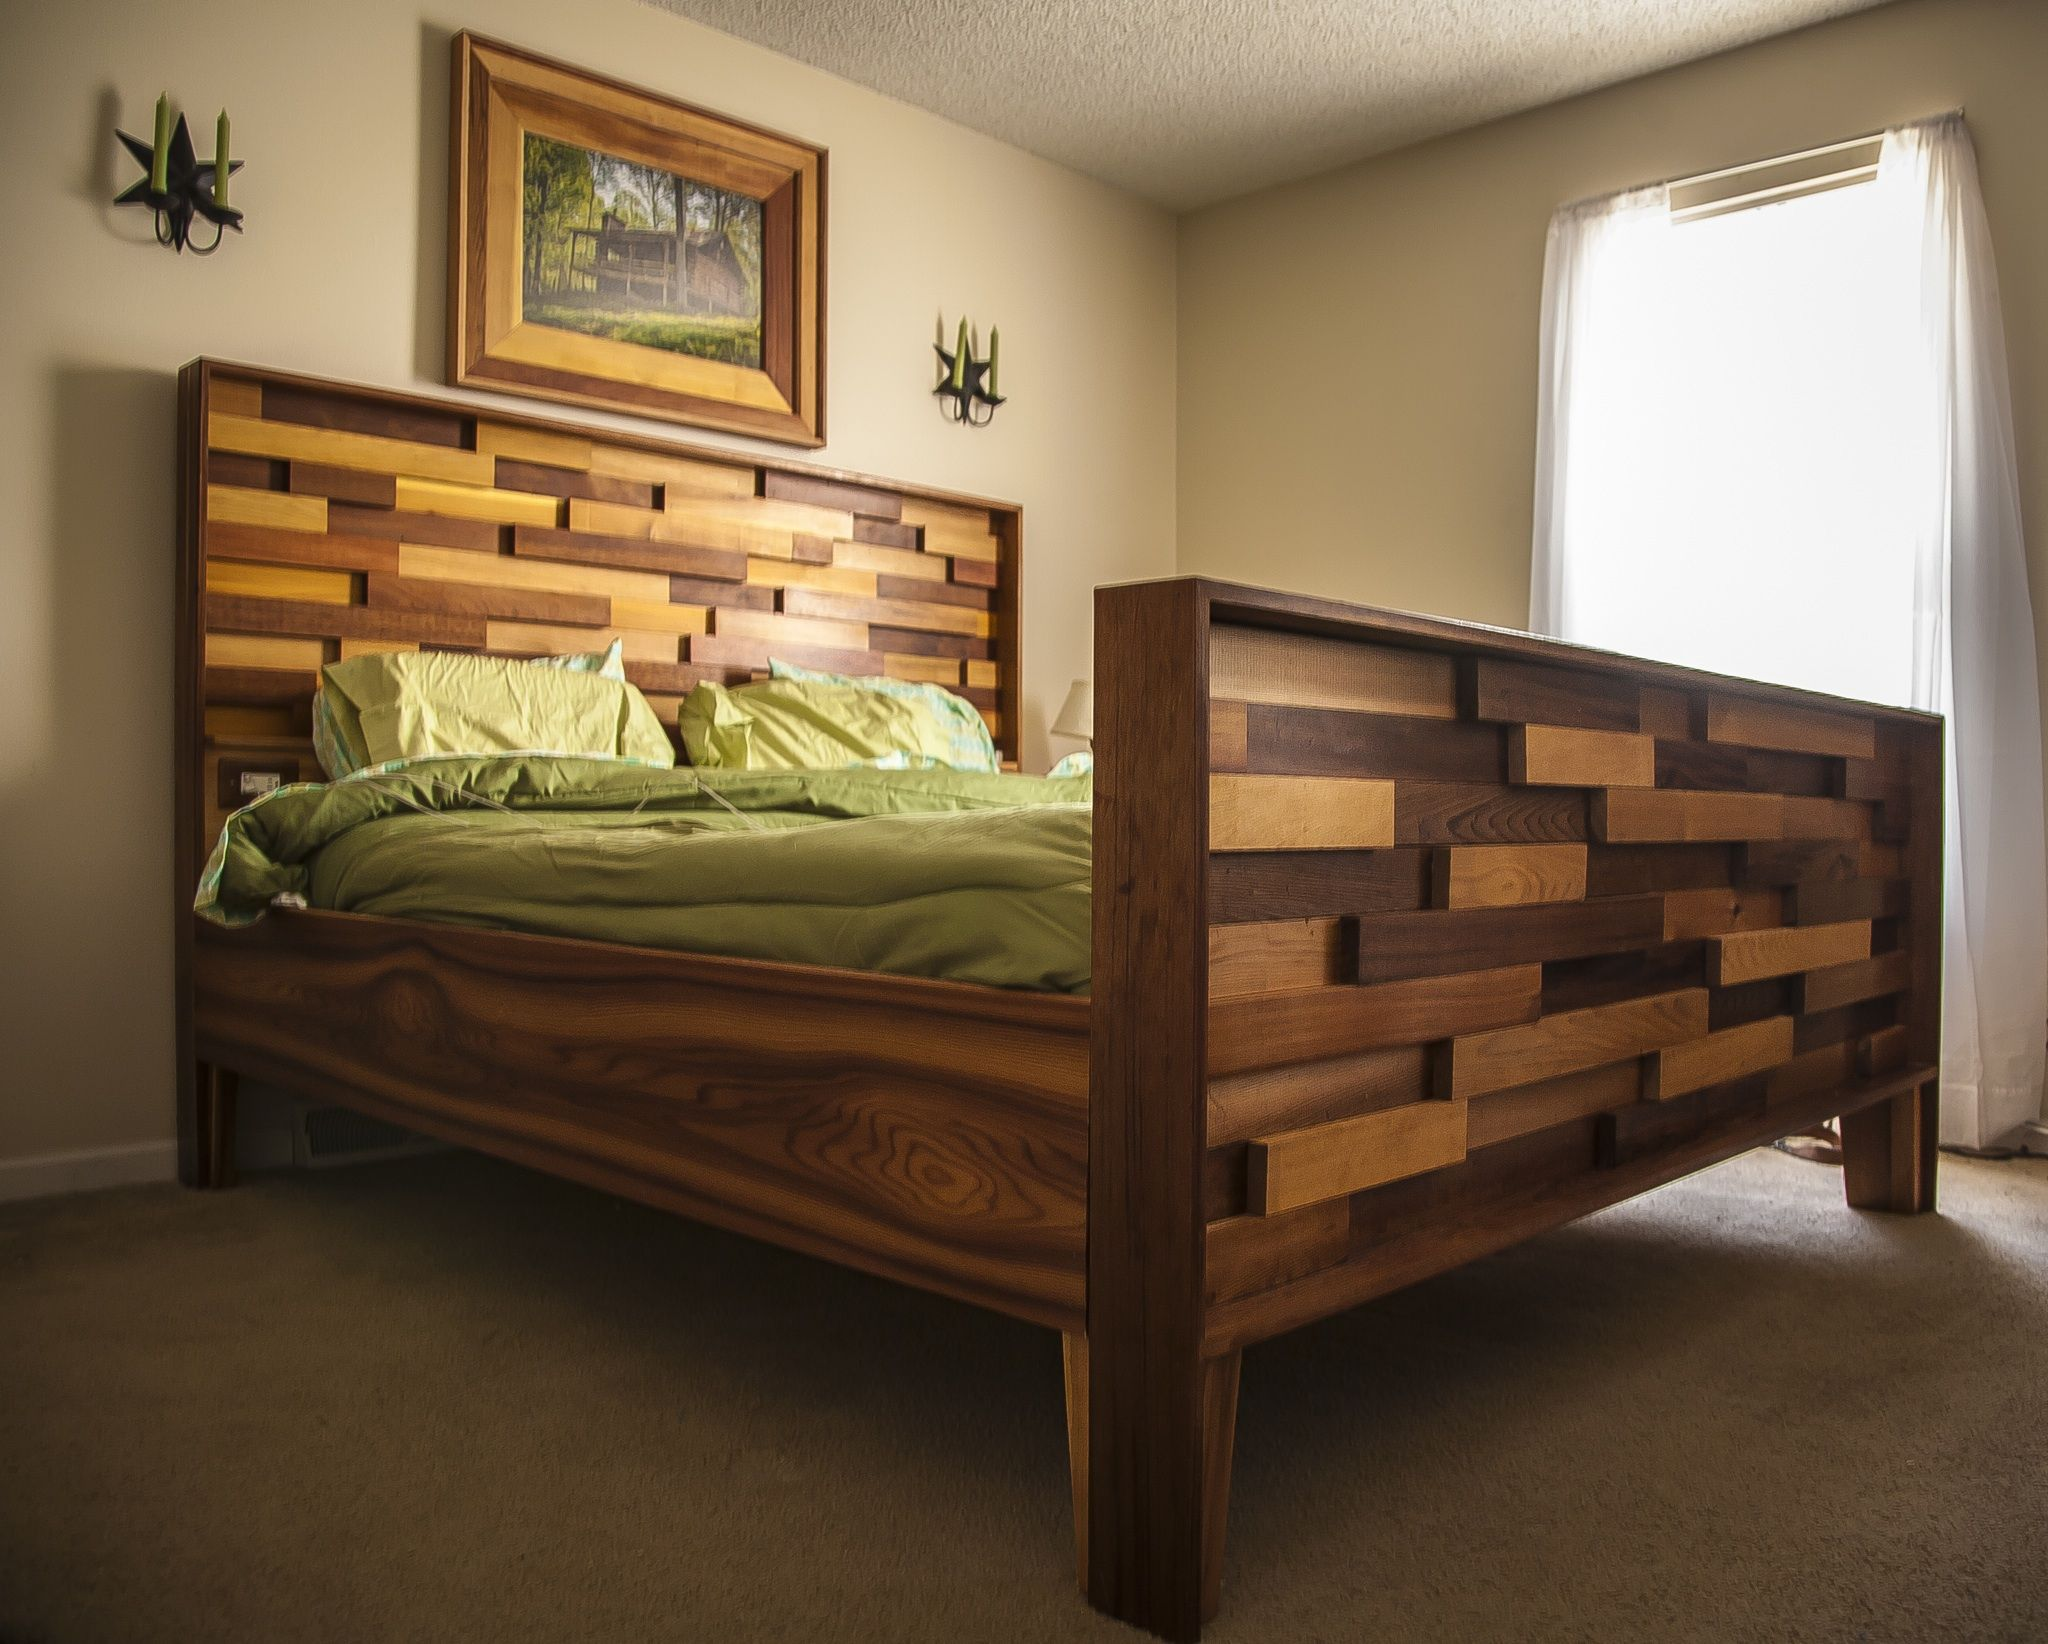 Western red cedar bed frame from leftover job site material ...